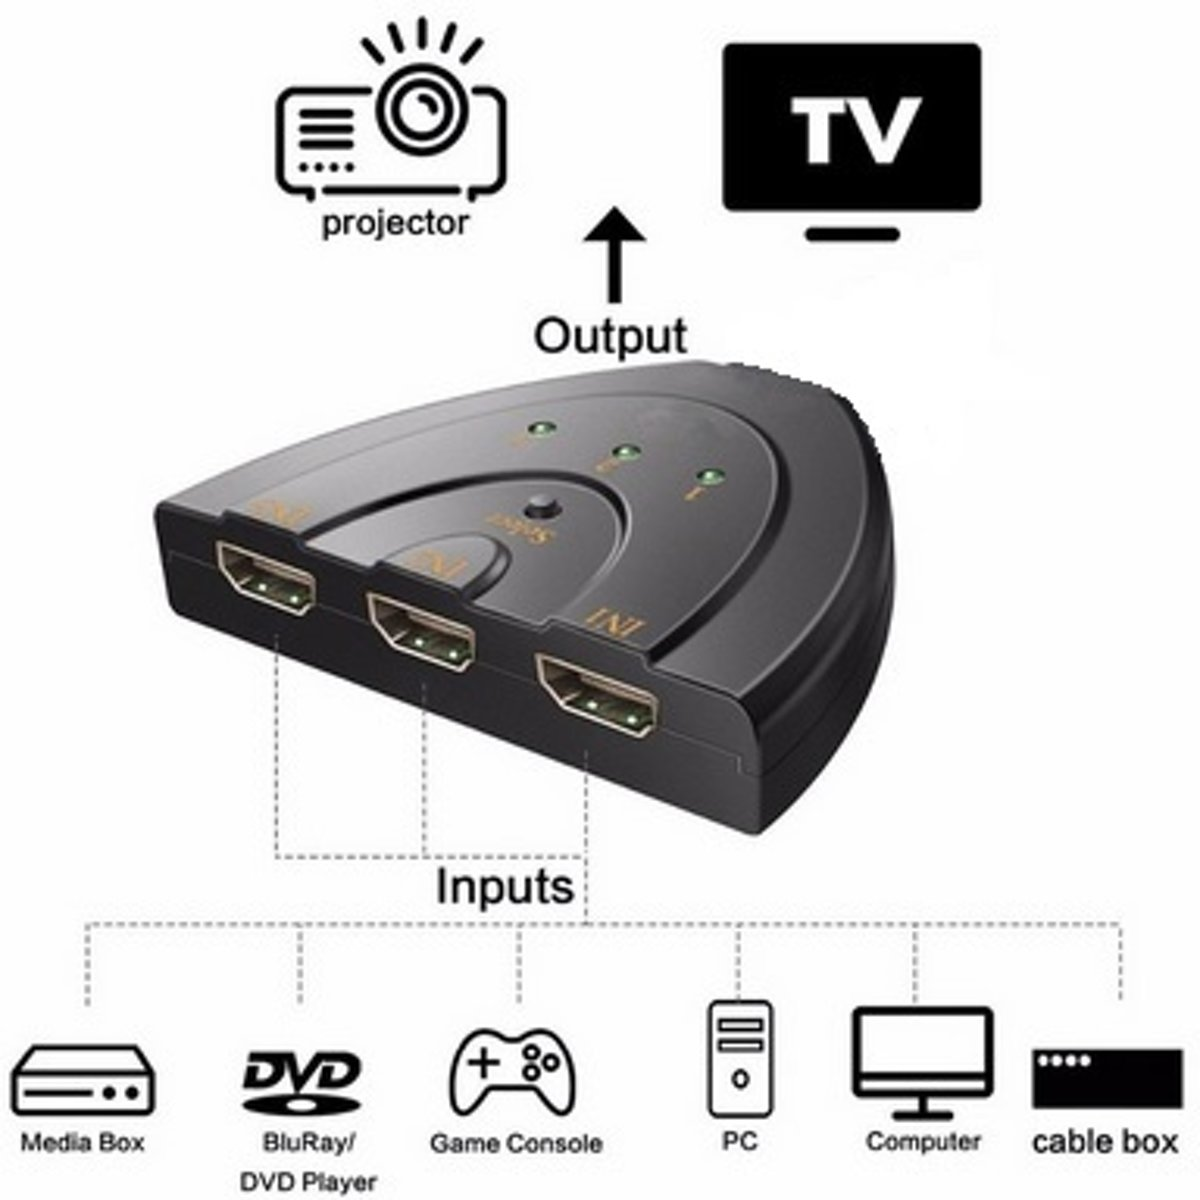 4k - HDMI AUTO Switch Switcher 4K*2K 3D Mini HDMI Splitter 3 in 1 out Port Hub - Geschikt voor o.a. DVD HDTV Xbox PS3 PS4 1080P